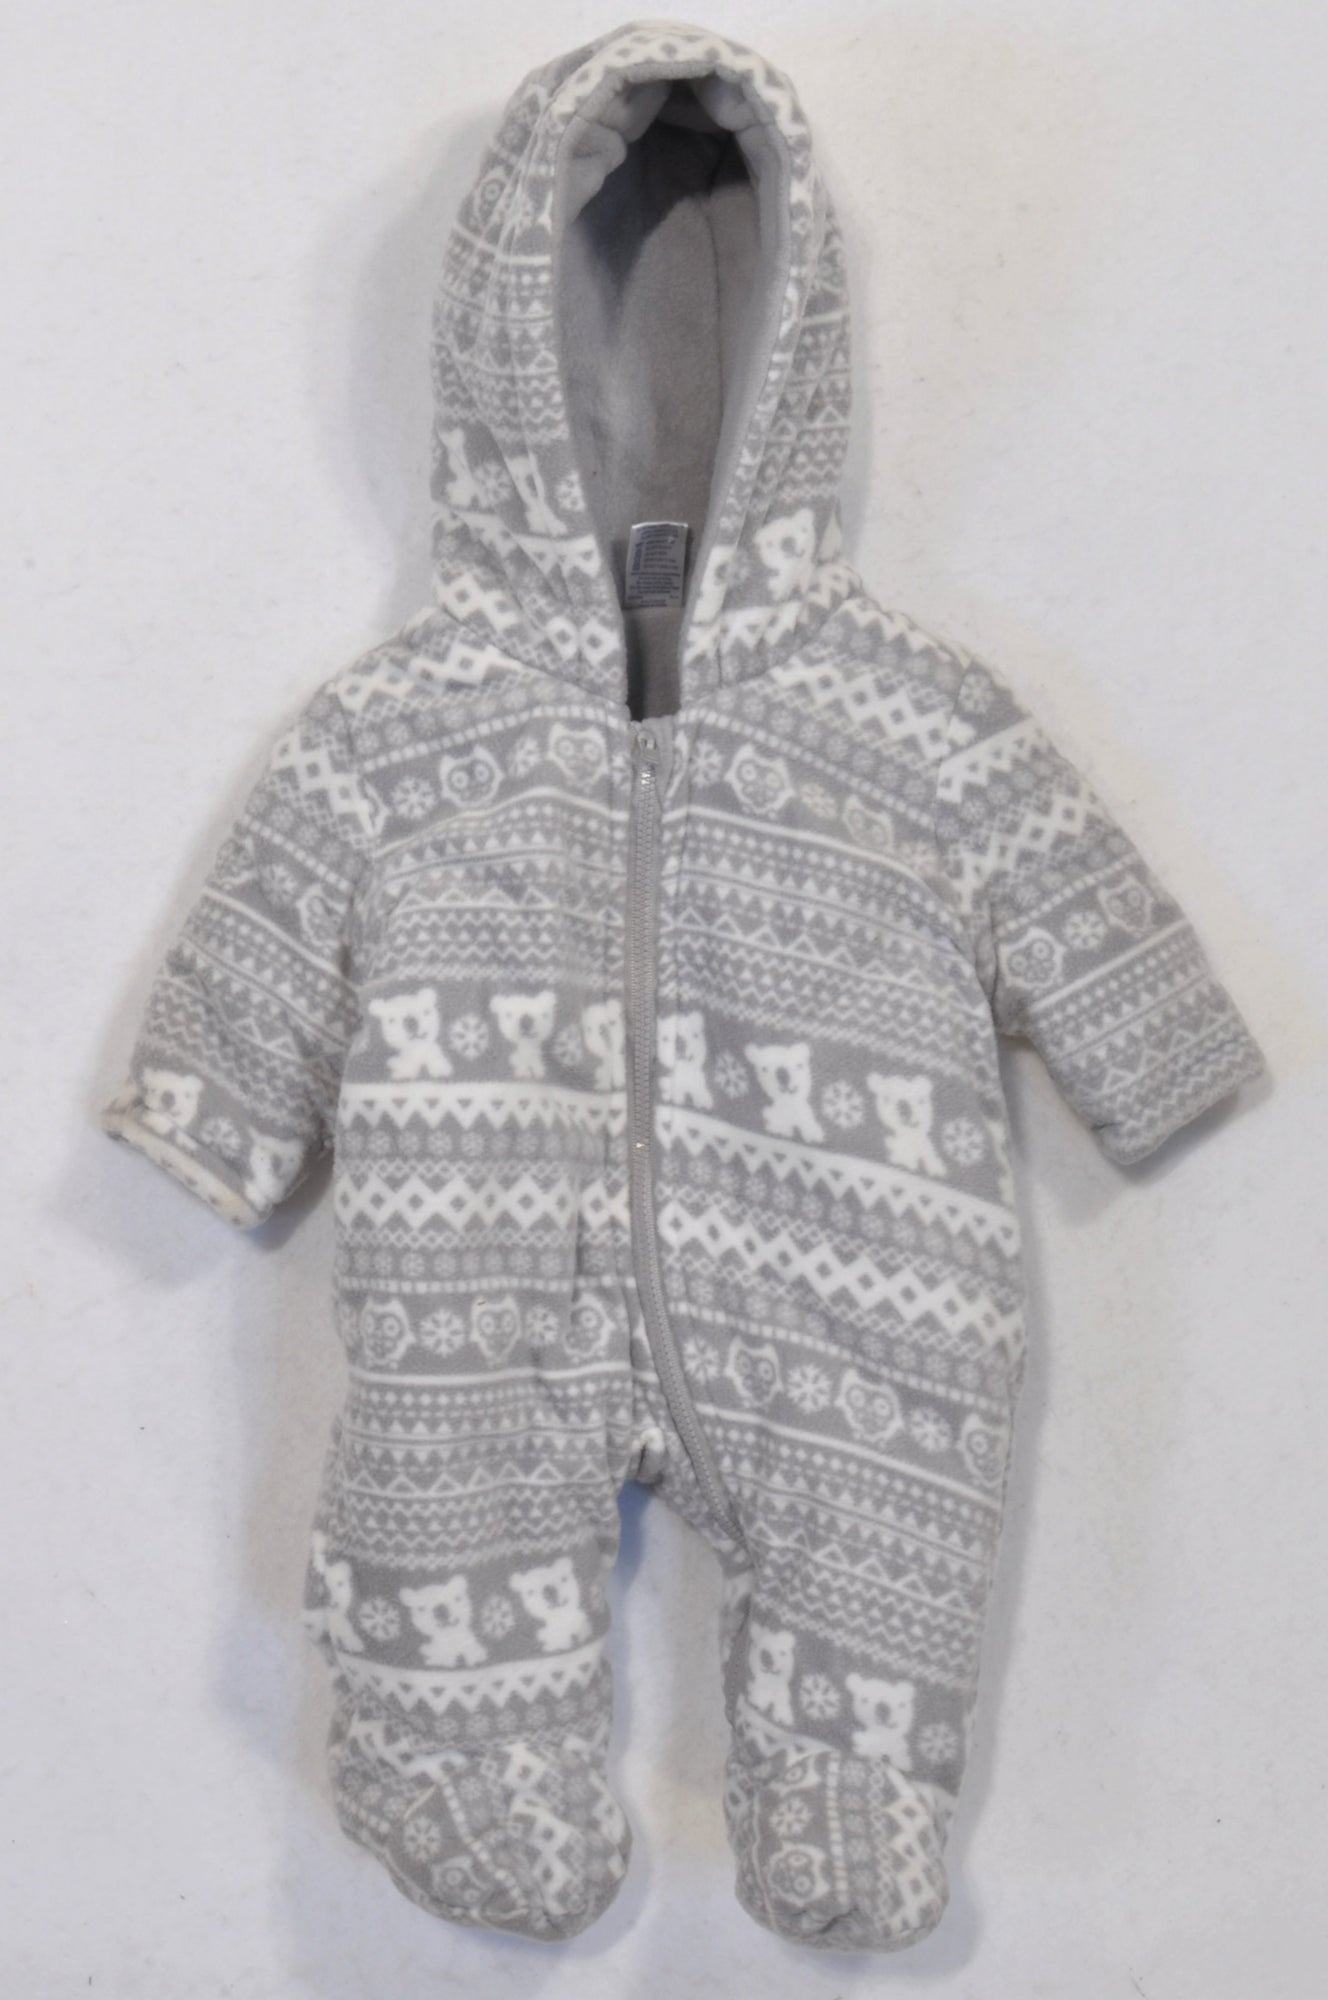 Ackermans Grey & White Teddy Owl Fleece Snow Suit Unisex N-B